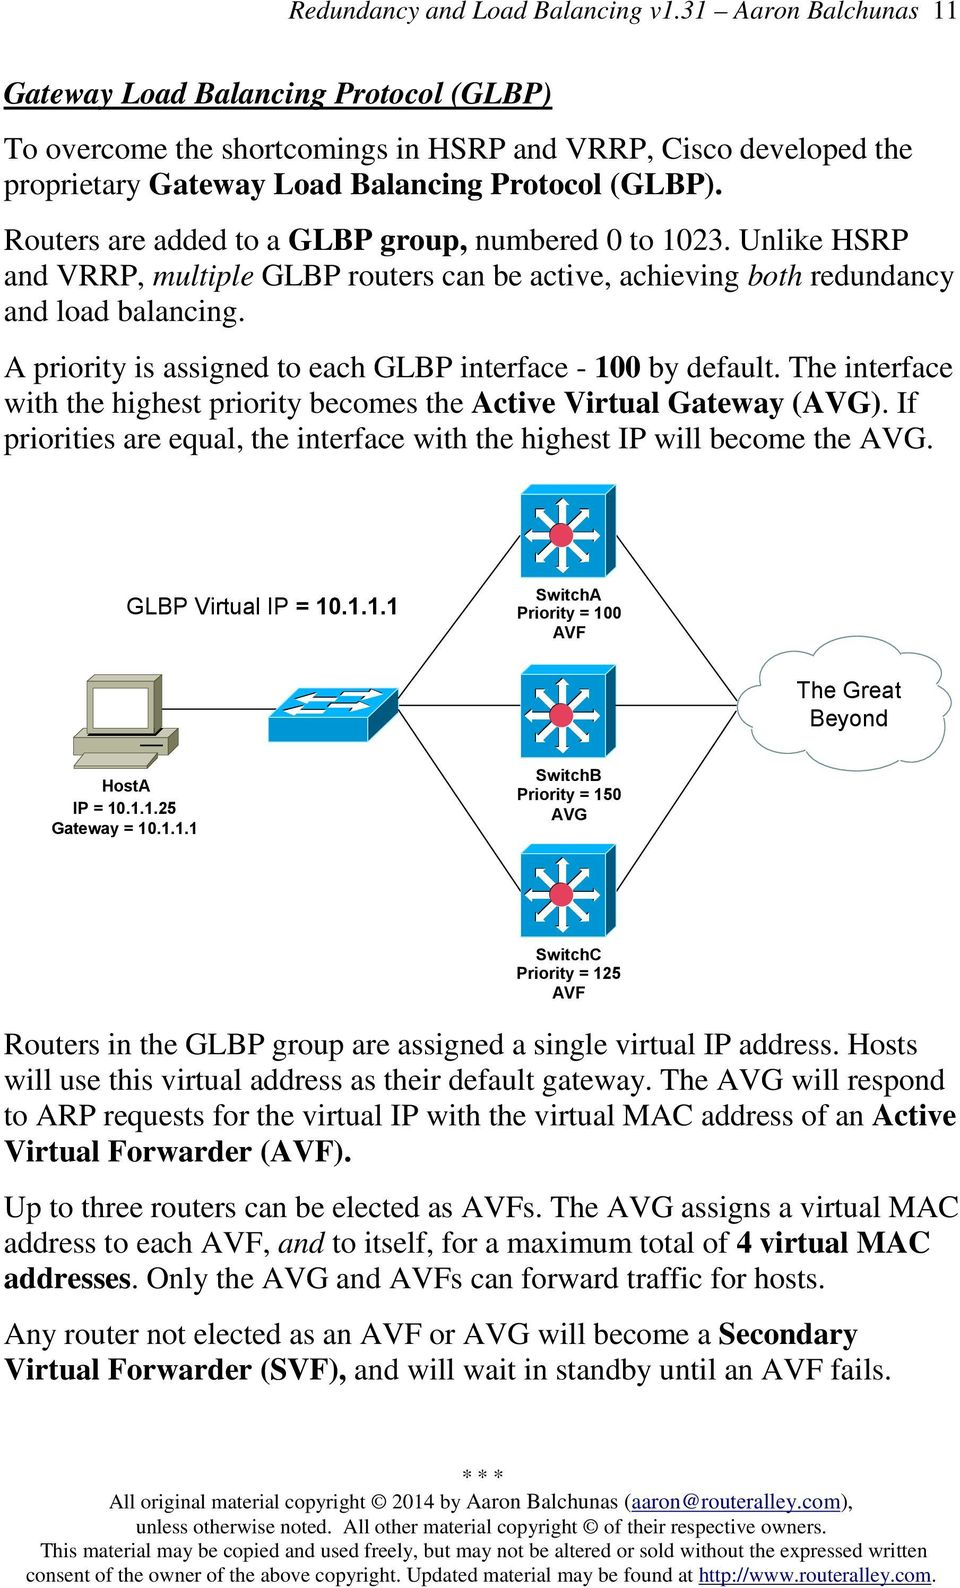 A priority is assigned to each GLBP interface - 100 by default. The interface with the highest priority becomes the Active Virtual Gateway (AVG).